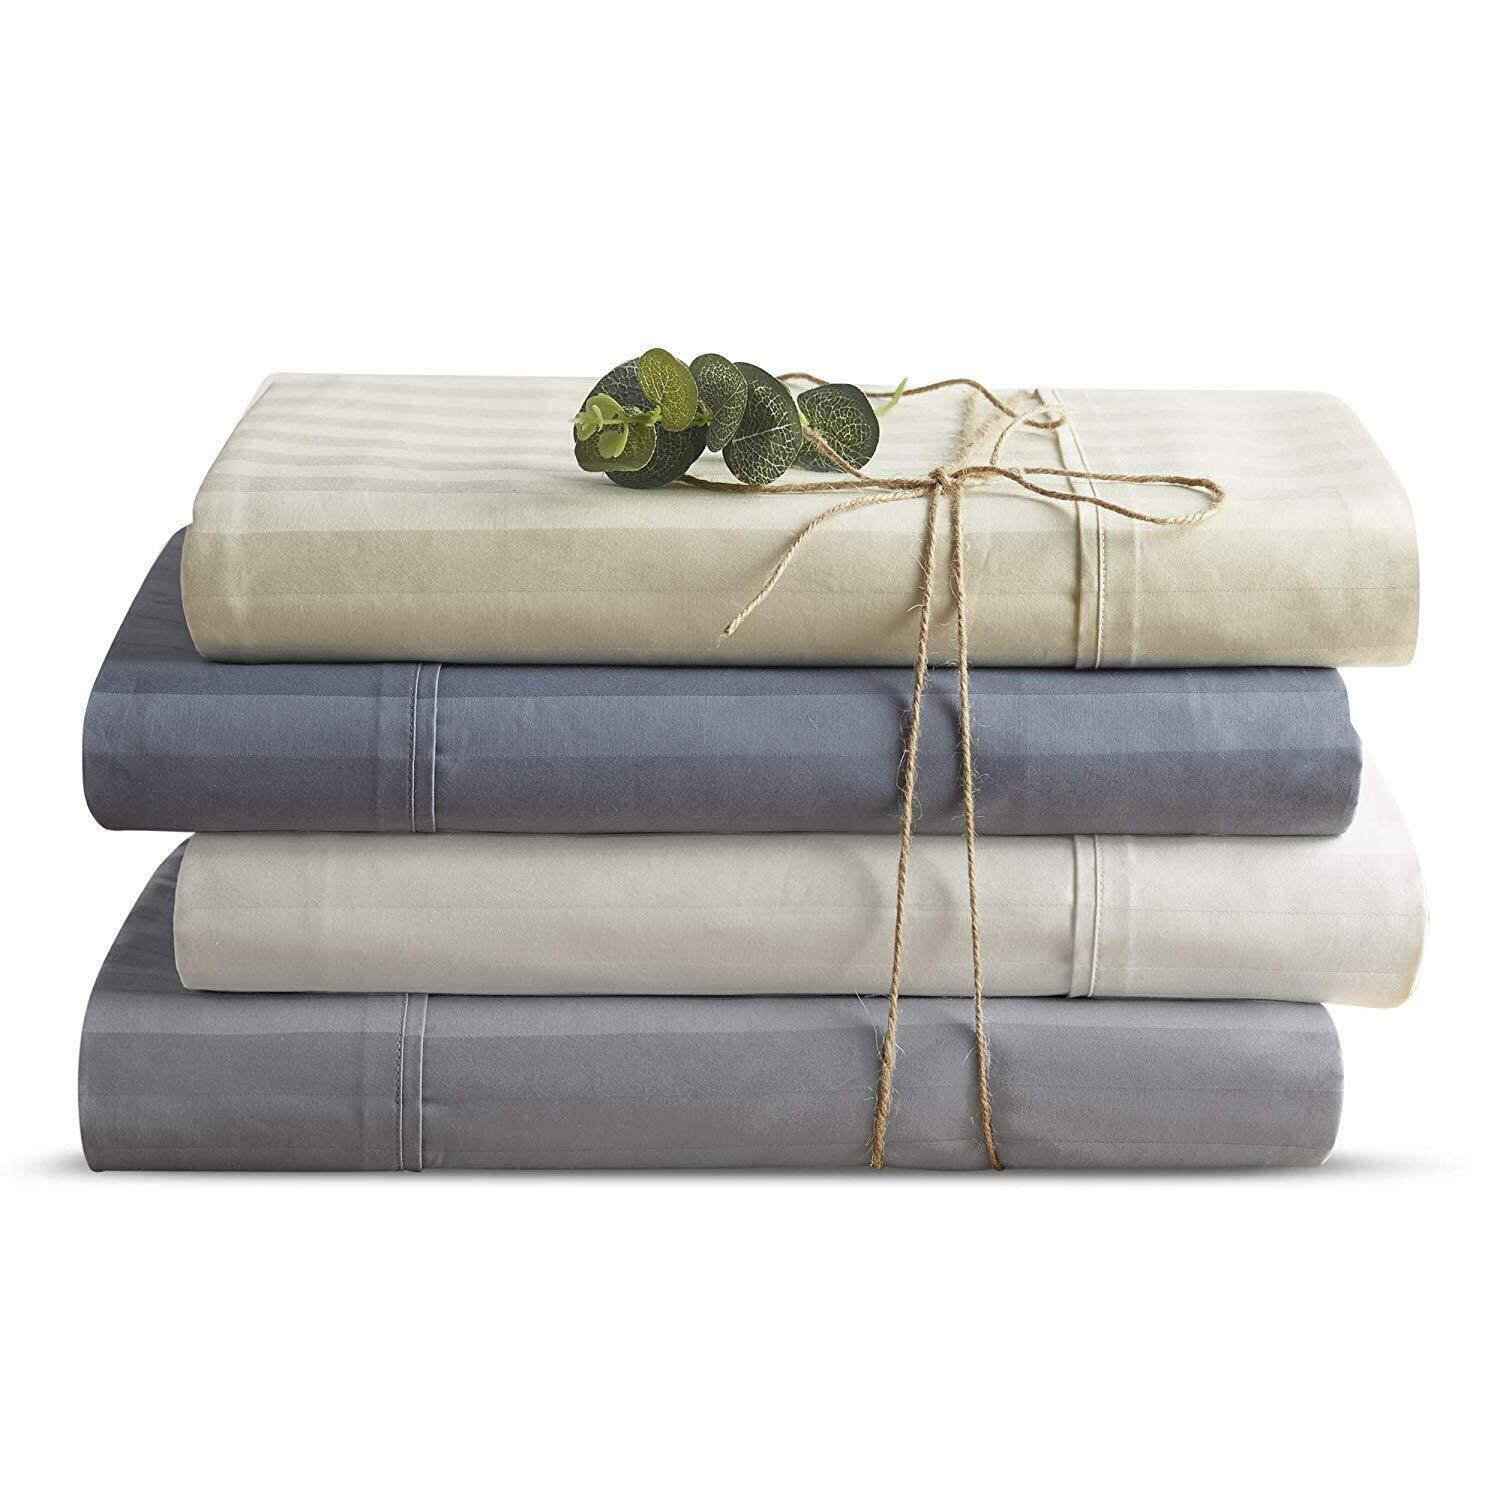 Brielle T300 Cotton Dobby SS Organic Sheet Set NEW